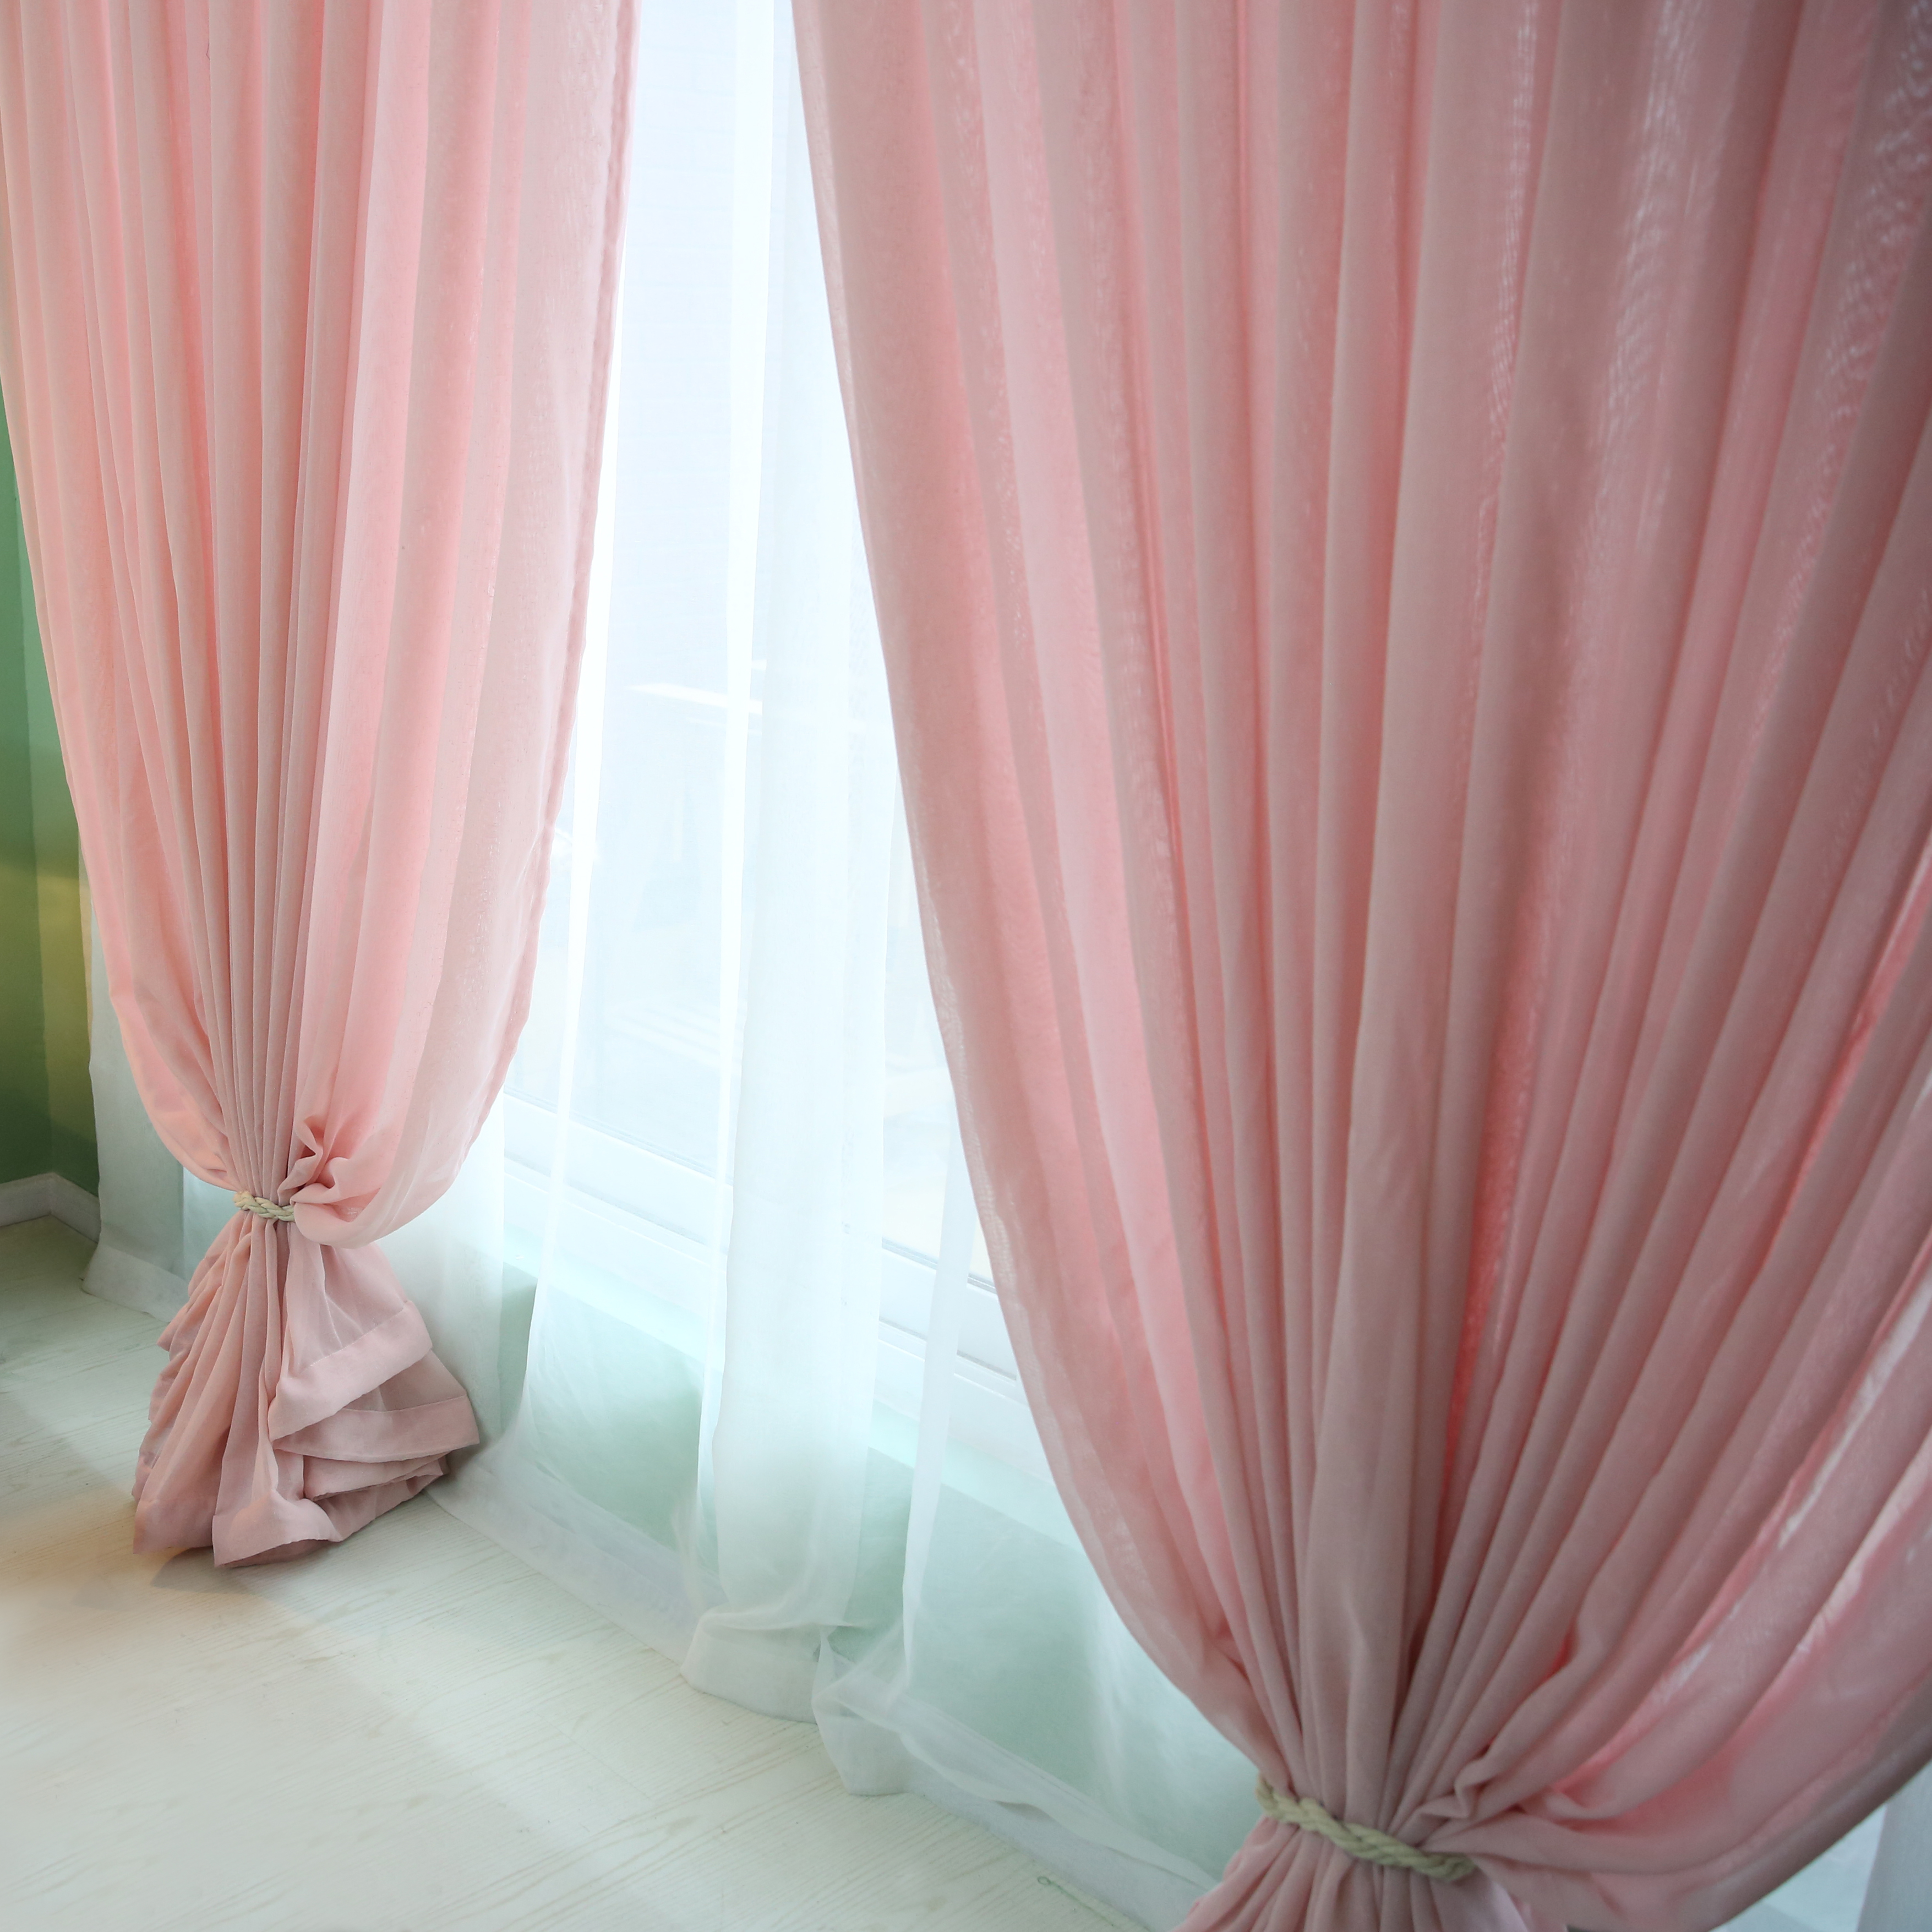 Voila Voile Curtains and Blinds - Camberley, Surrey GU15 3DT - 01344 538284 | ShowMeLocal.com